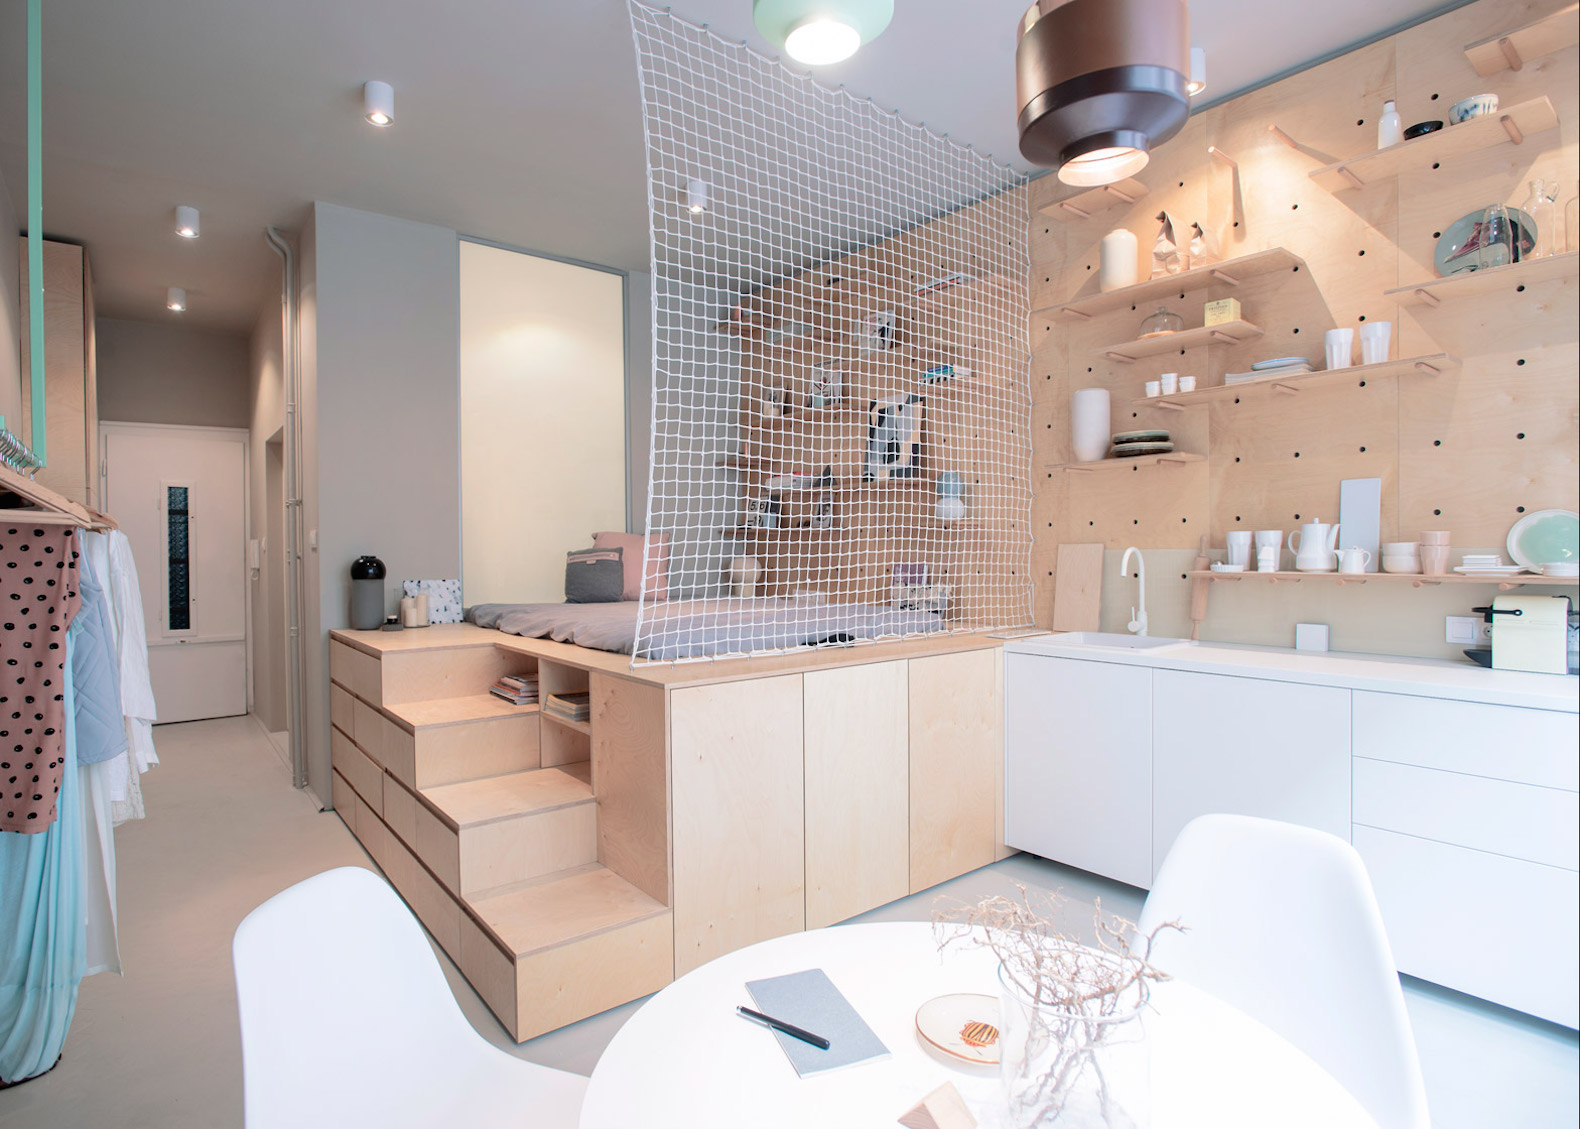 Stylish And Minimalist Micro Apartment Makes The Most Of Small Space Living